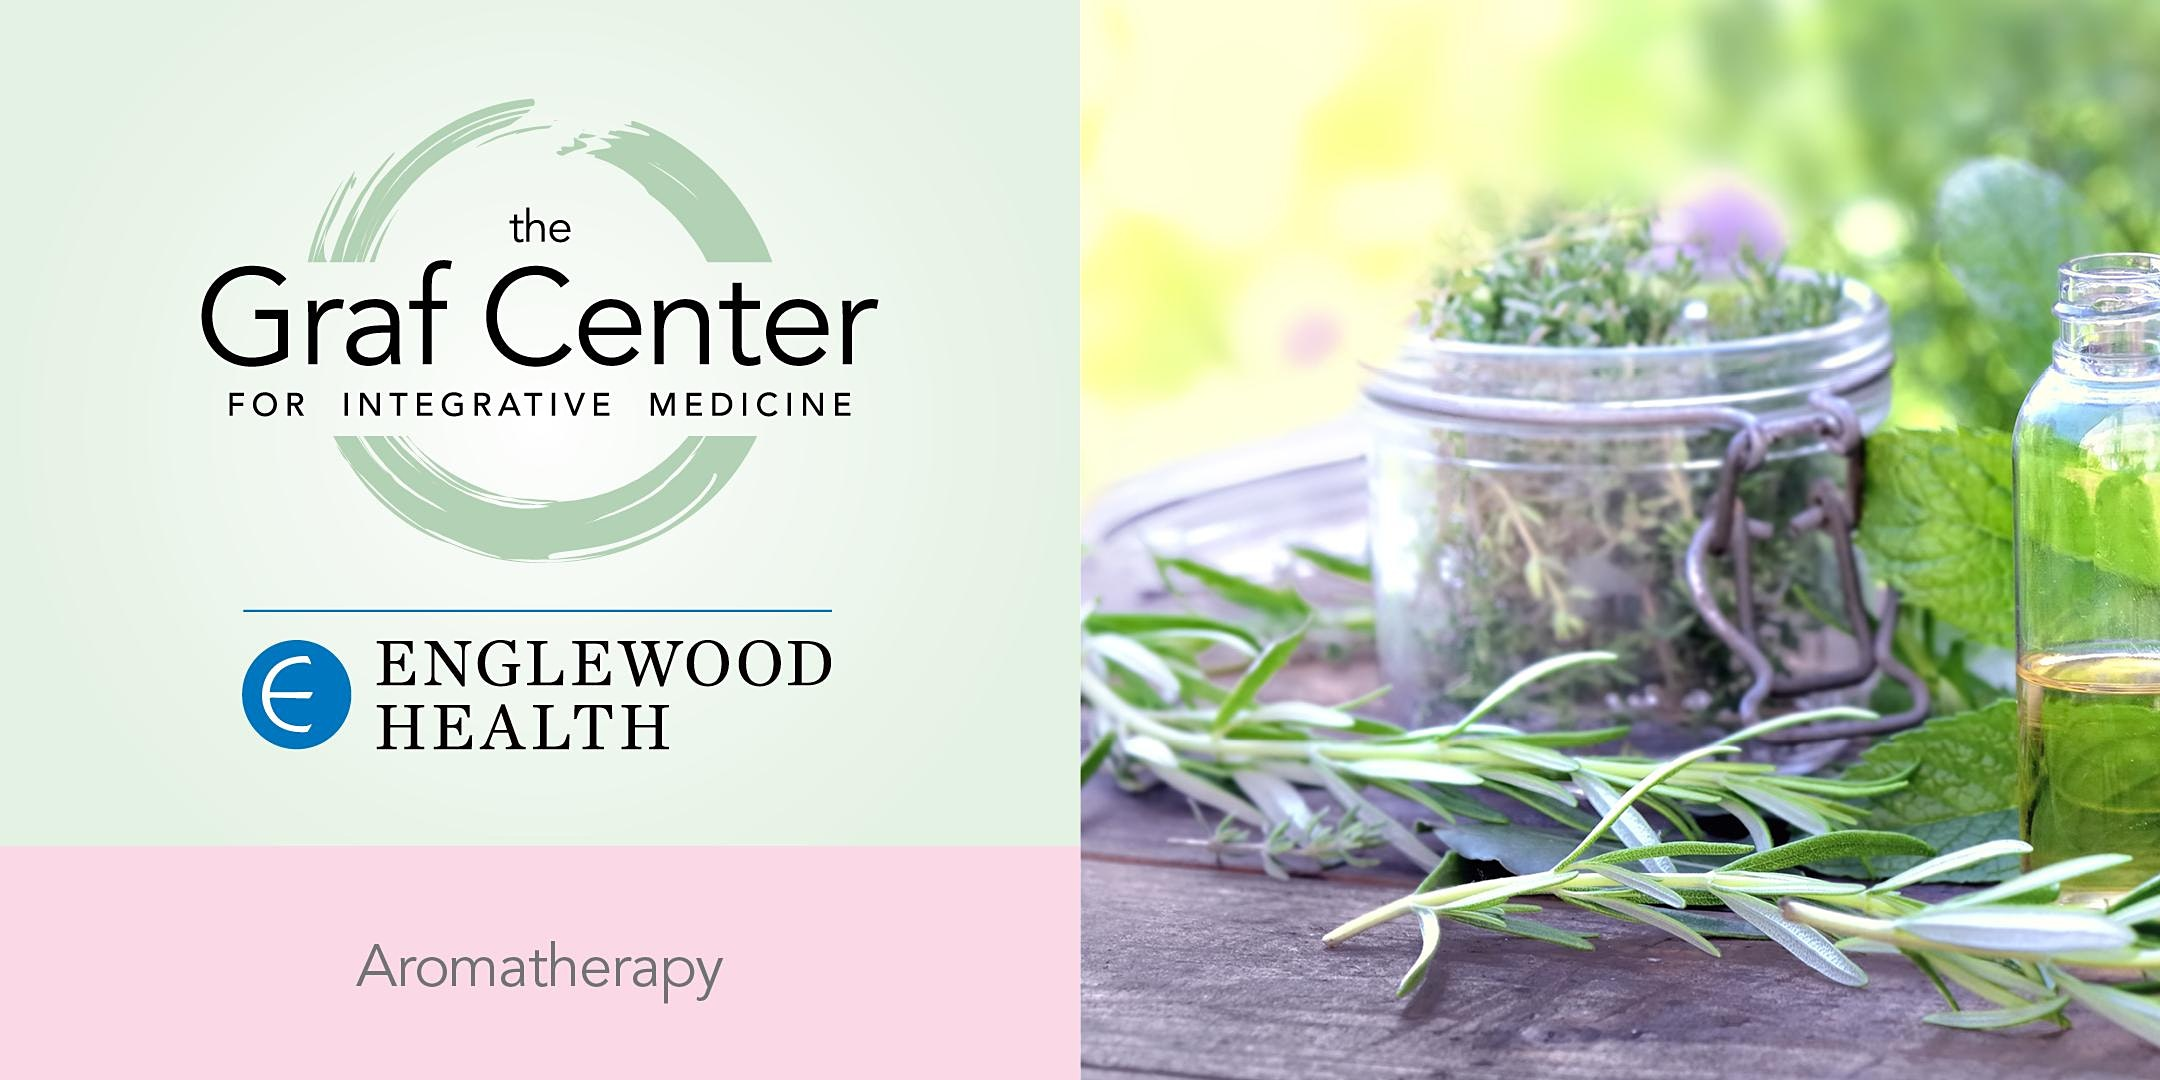 More info: Power of Aromatherapy - September 23